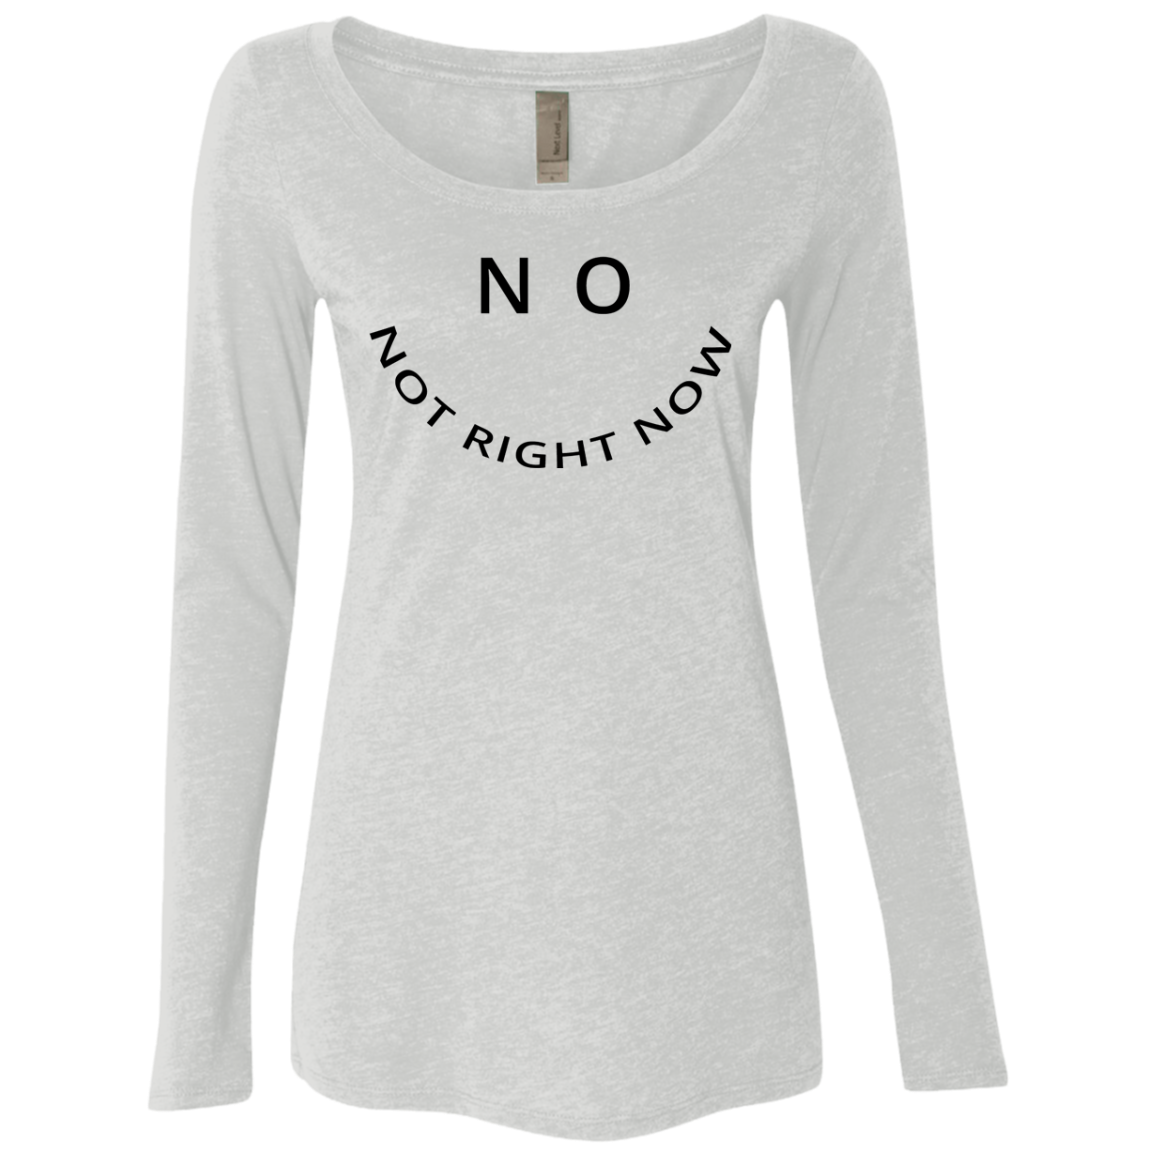 No Not Right Now Women's Long Sleeve Tee